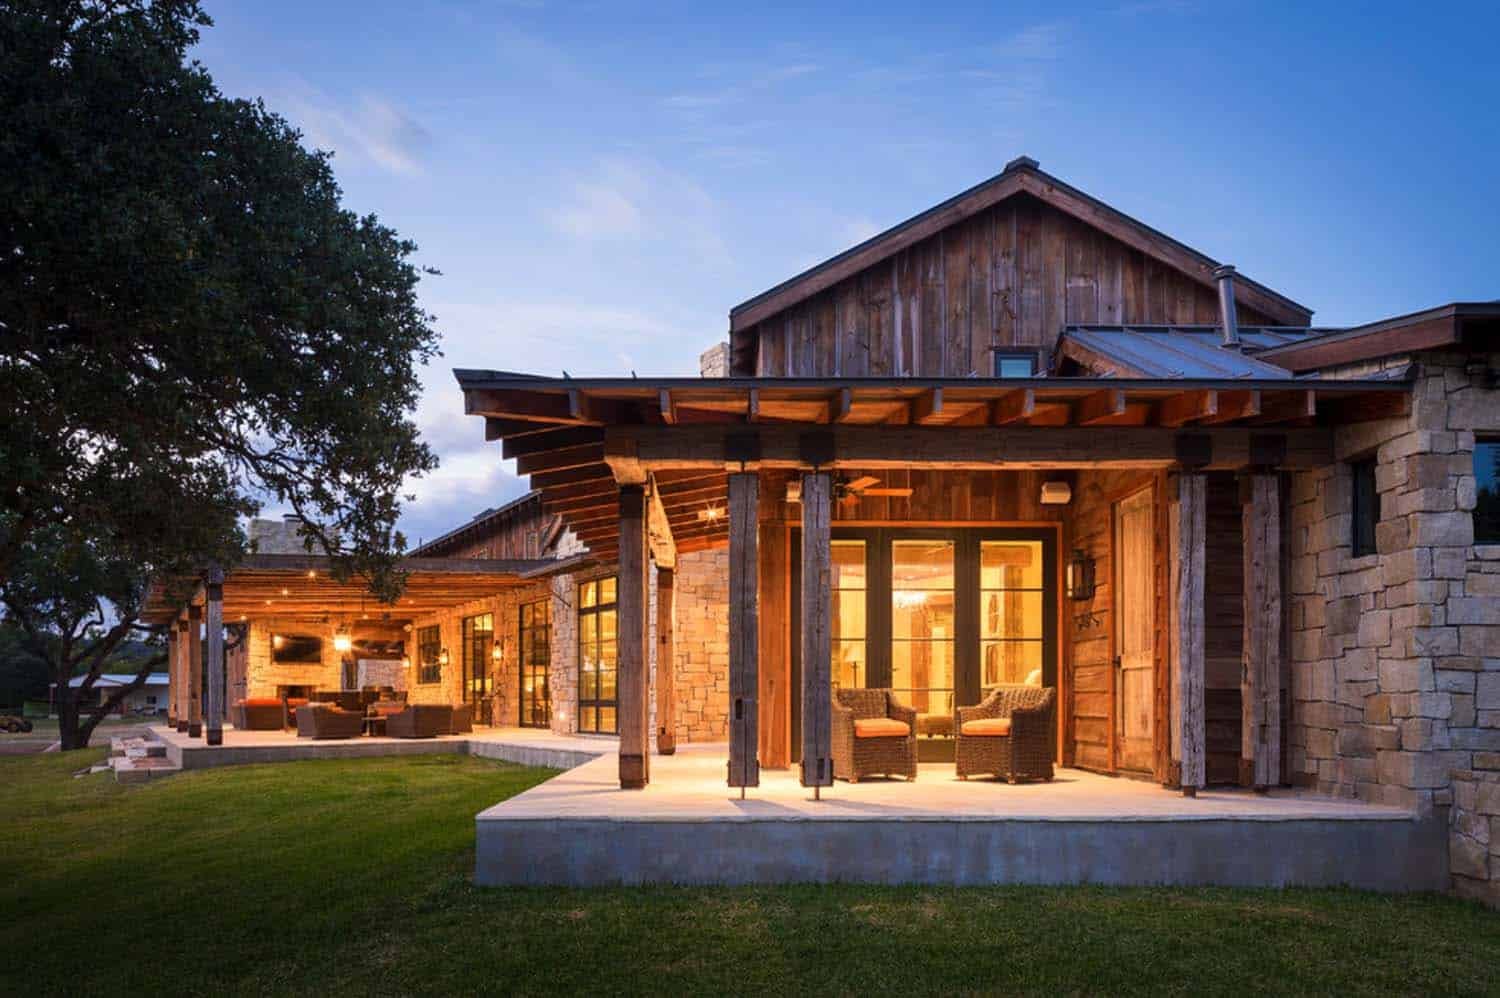 Modern rustic barn style retreat in texas hill country for Rustic contemporary home plans